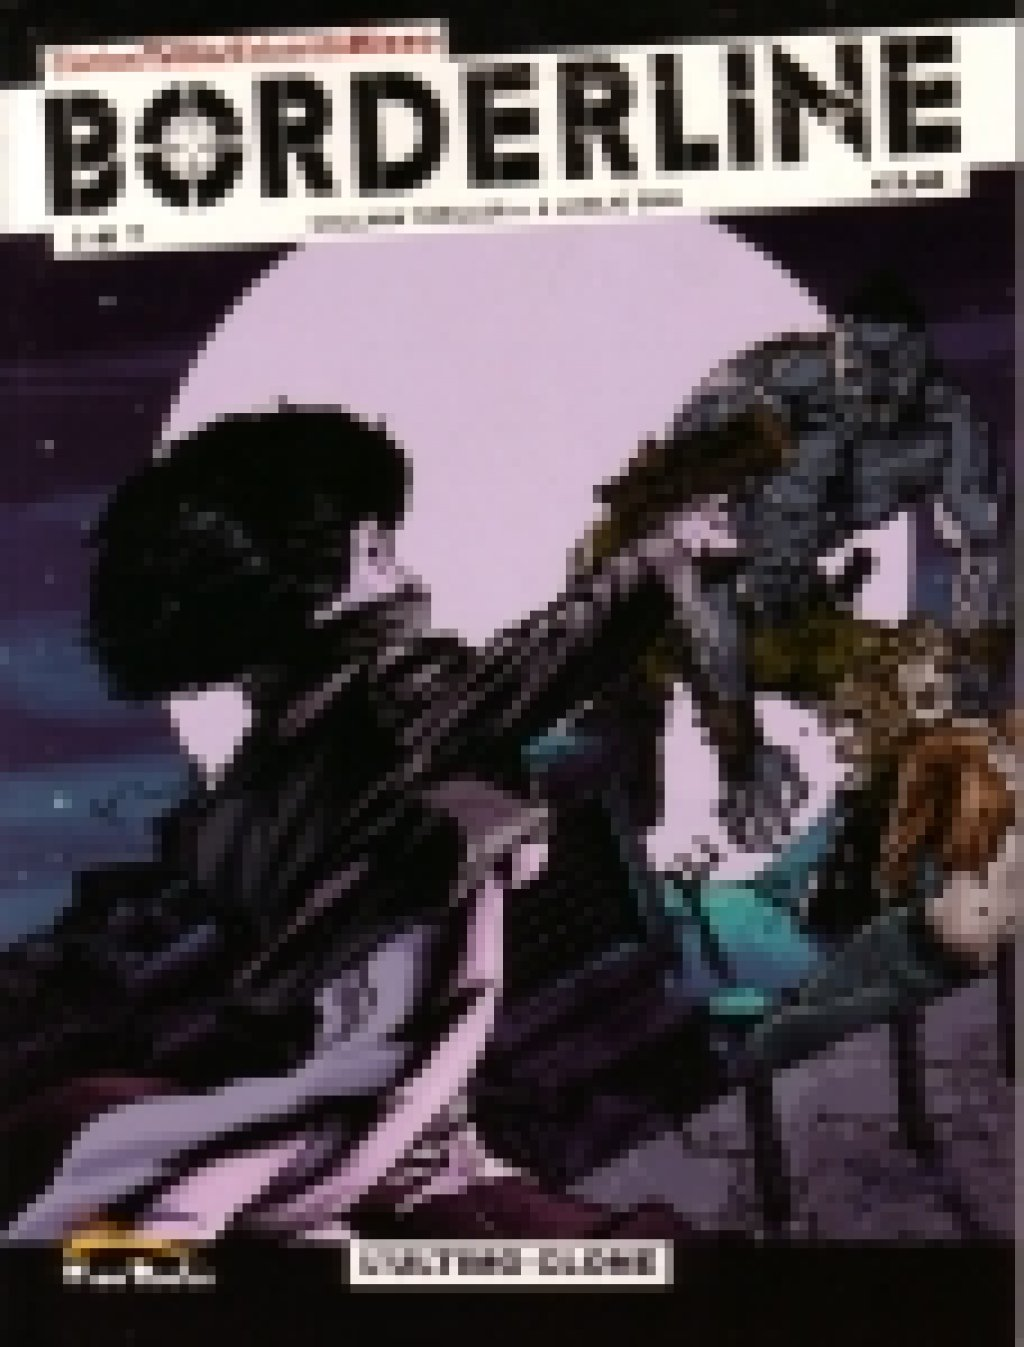 BORDERLINE - Post Umano Troppo Umano